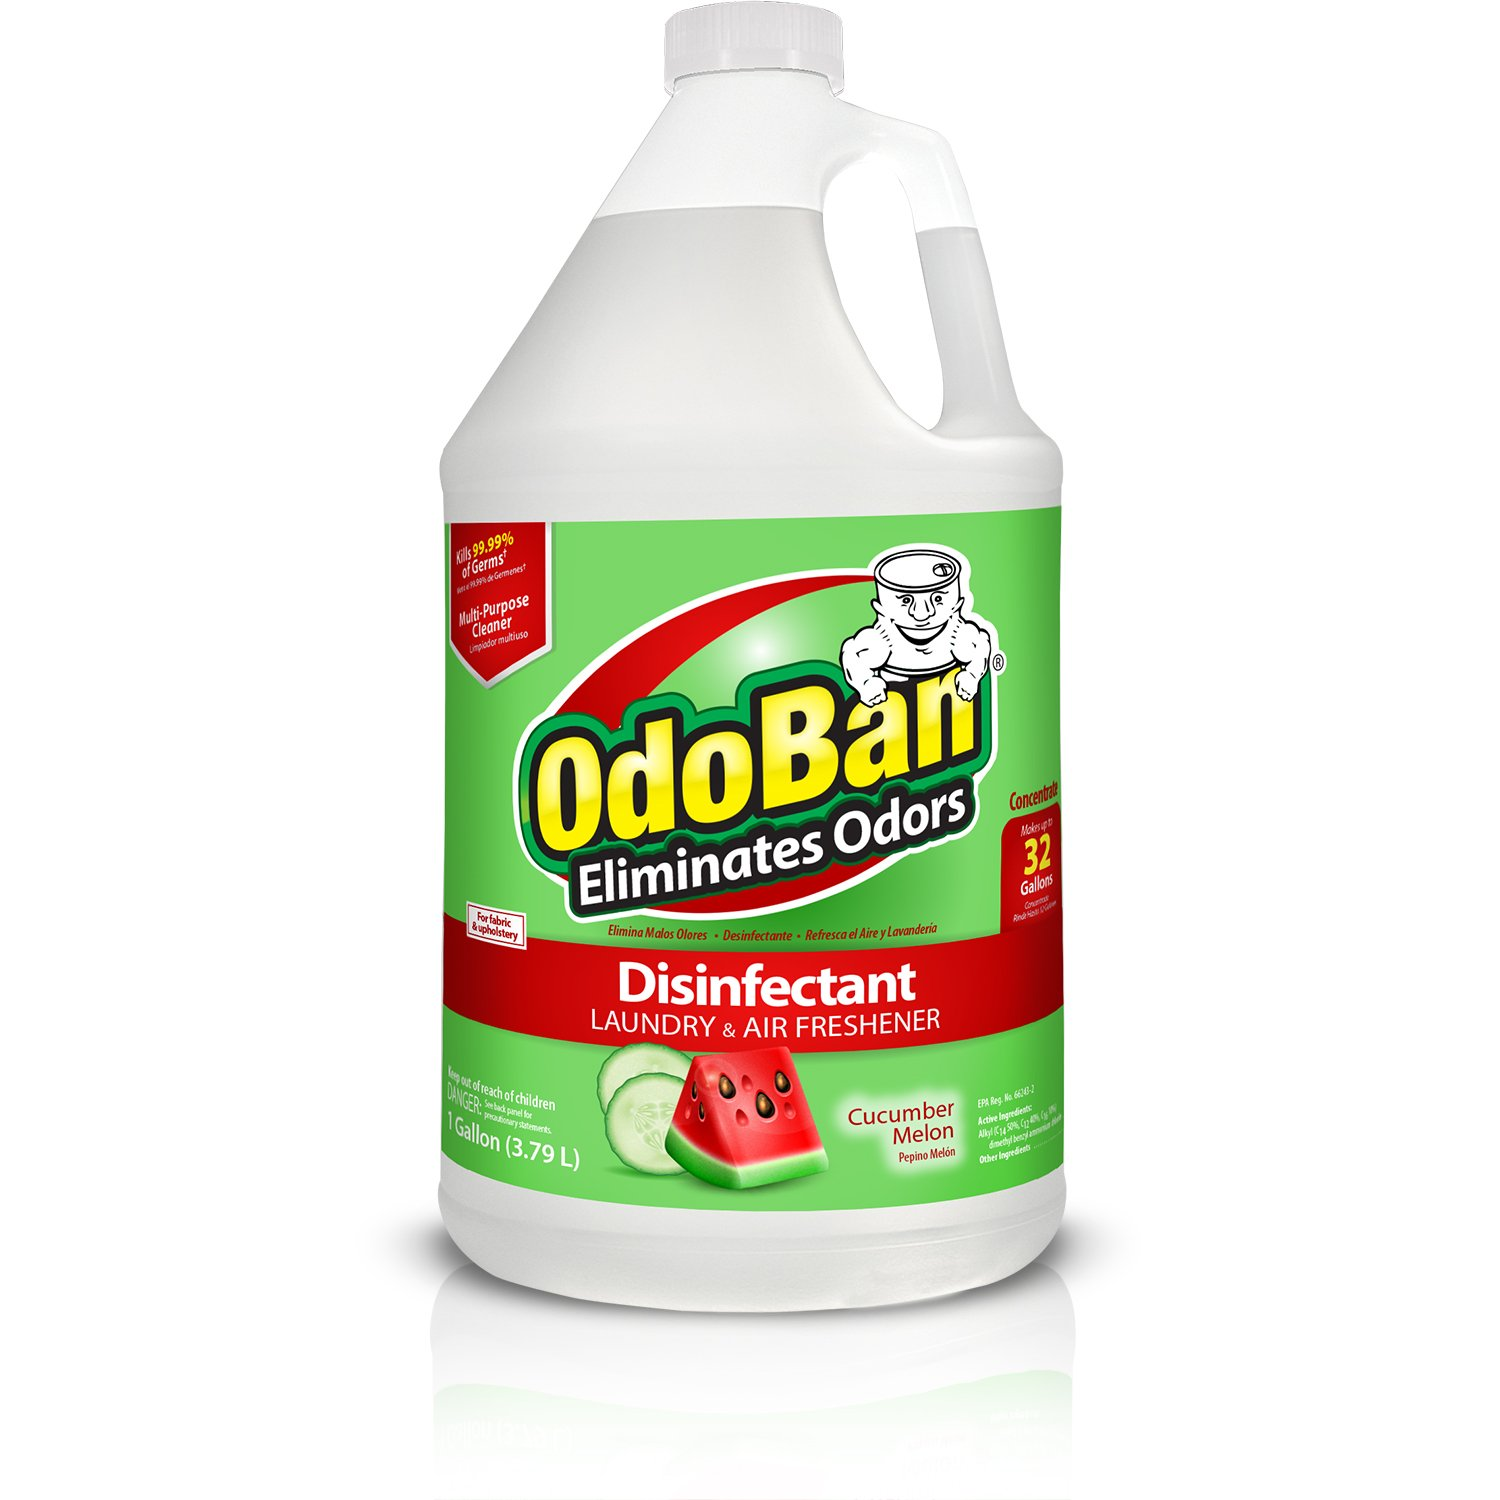 OdoBan Odor Eliminator and Disinfectant Concentrate - Cucumber Melon by OdoBan